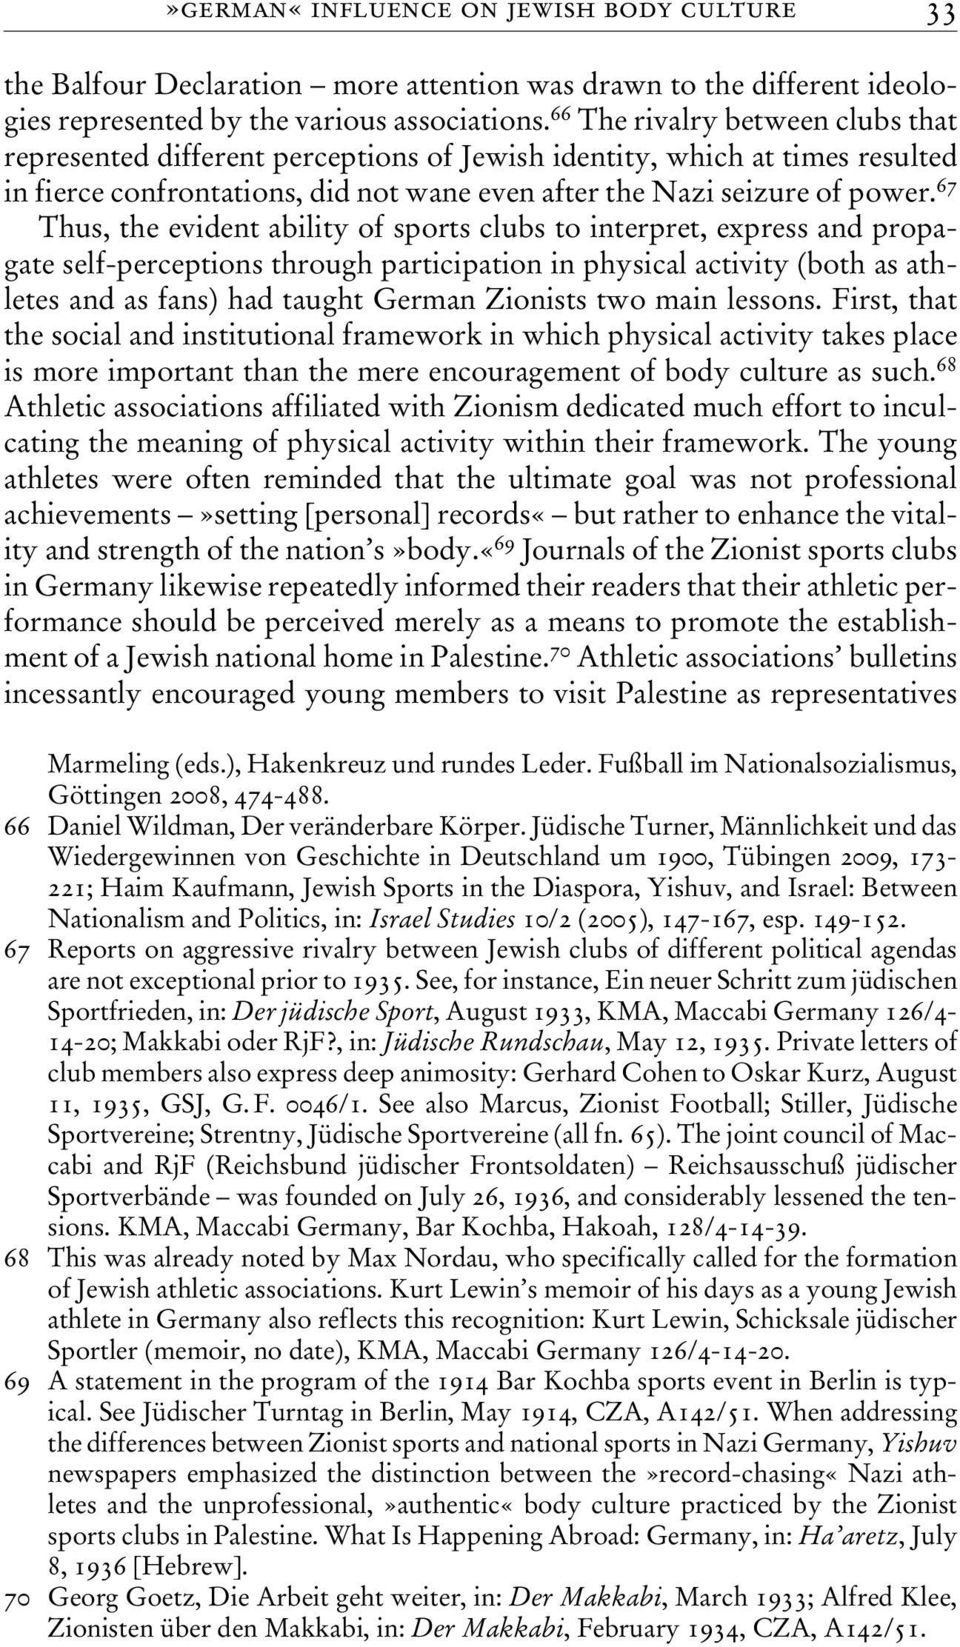 67 Thus, the evident ability of sports clubs to interpret, express and propagate self-perceptions through participation in physical activity (both as athletes and as fans) had taught German Zionists